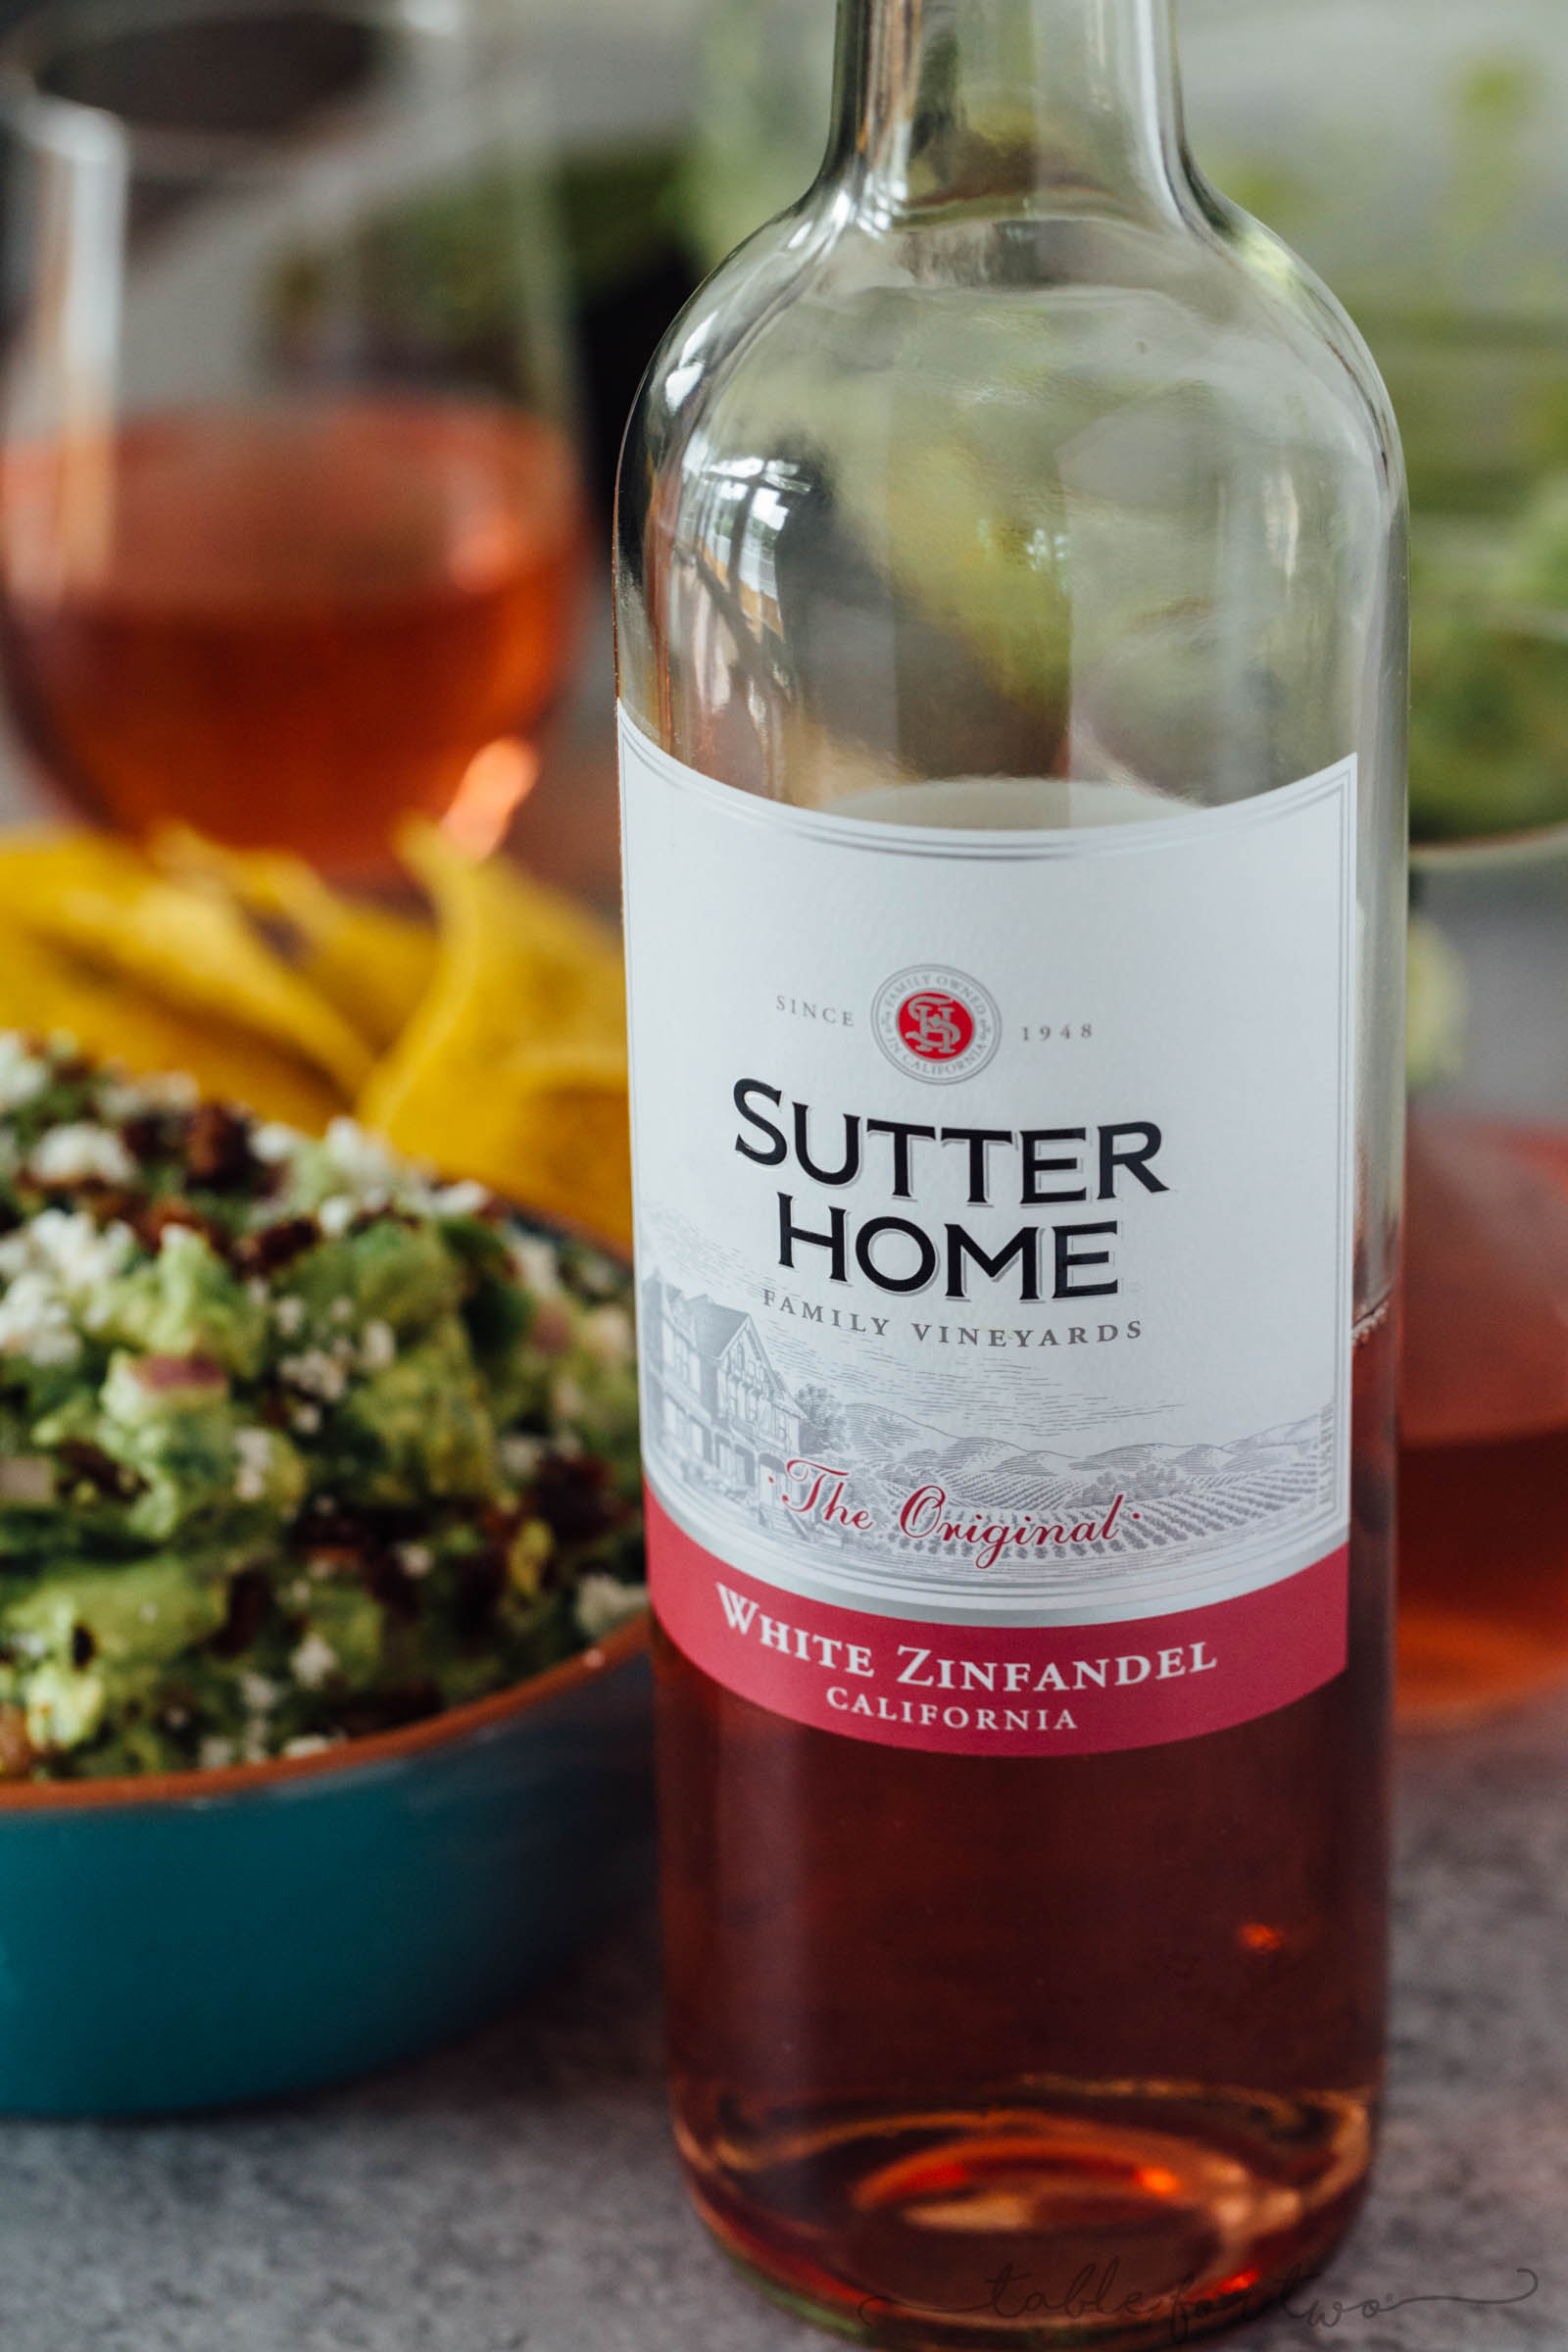 Loaded guacamole is pretty much the only way to have guacamole these days. Charred poblano peppers, bacon, and queso fresco make this guacamole freaking amazing especially with a glass of @sutterhome White Zinfandel! #ad #sweetonspice